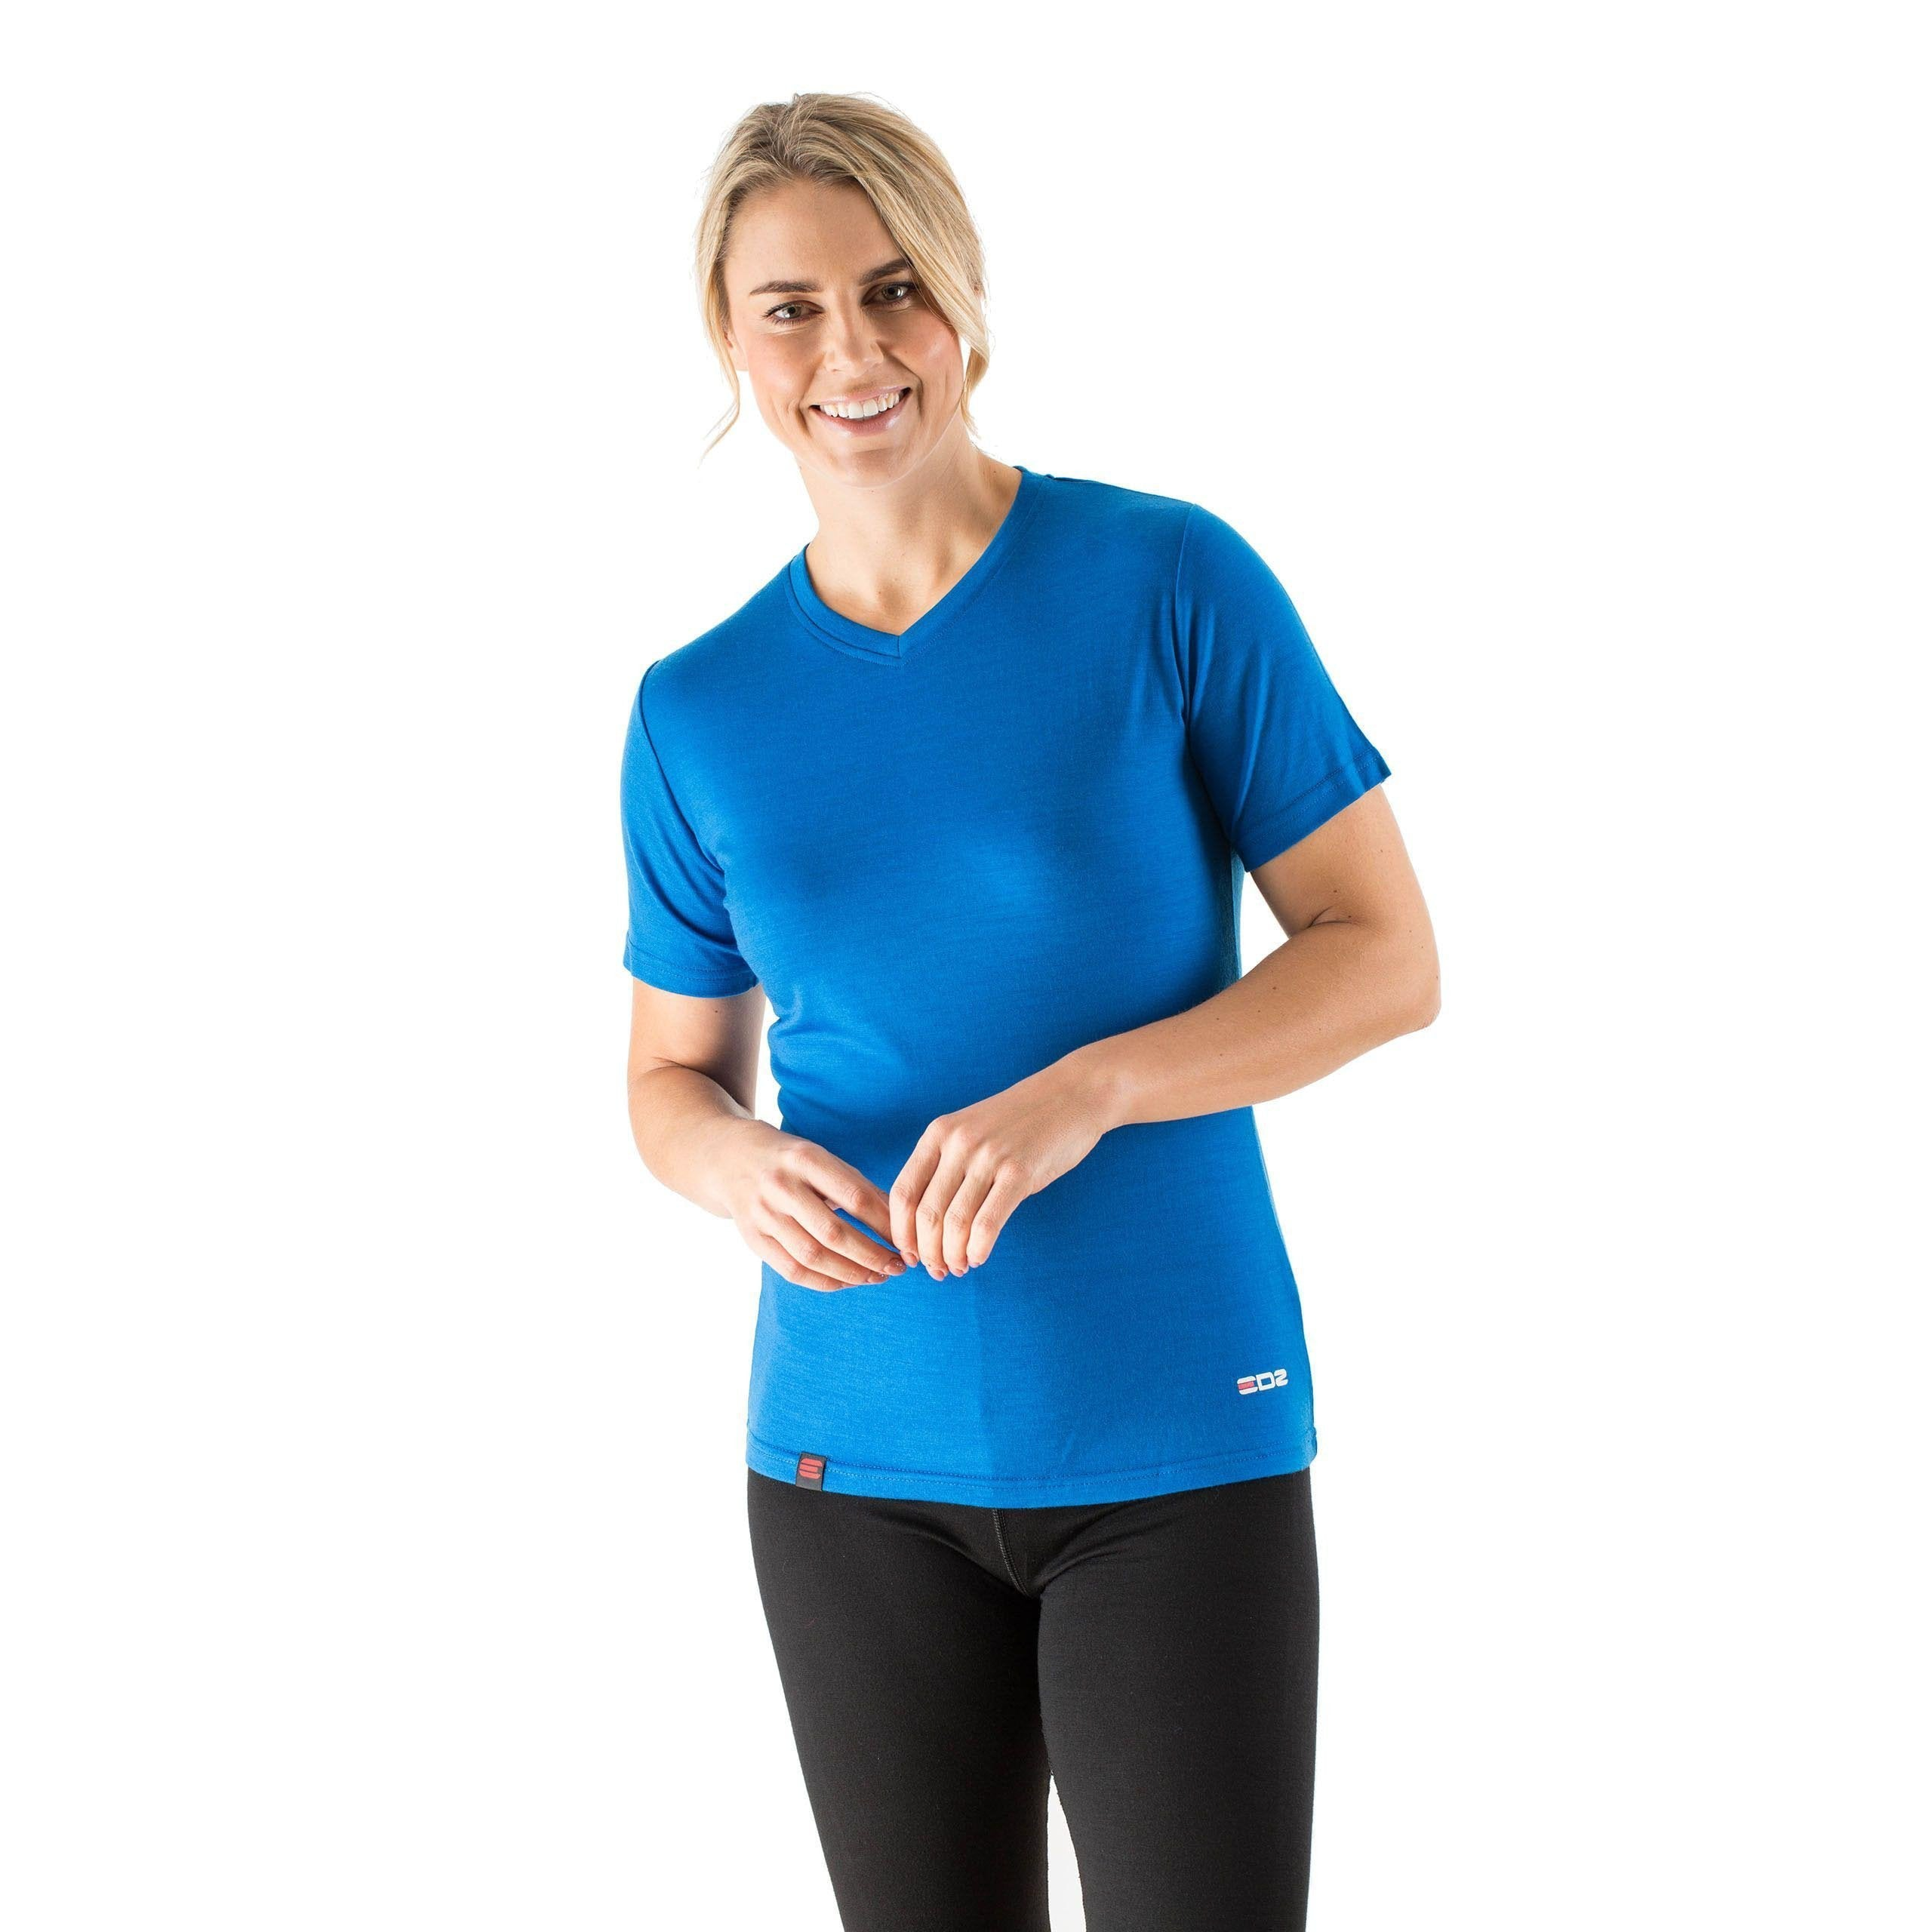 collections/Womens_Merino_T-Shirt_Blue_cdcf3a05-9311-461b-9a82-888086dcdb6b.jpg